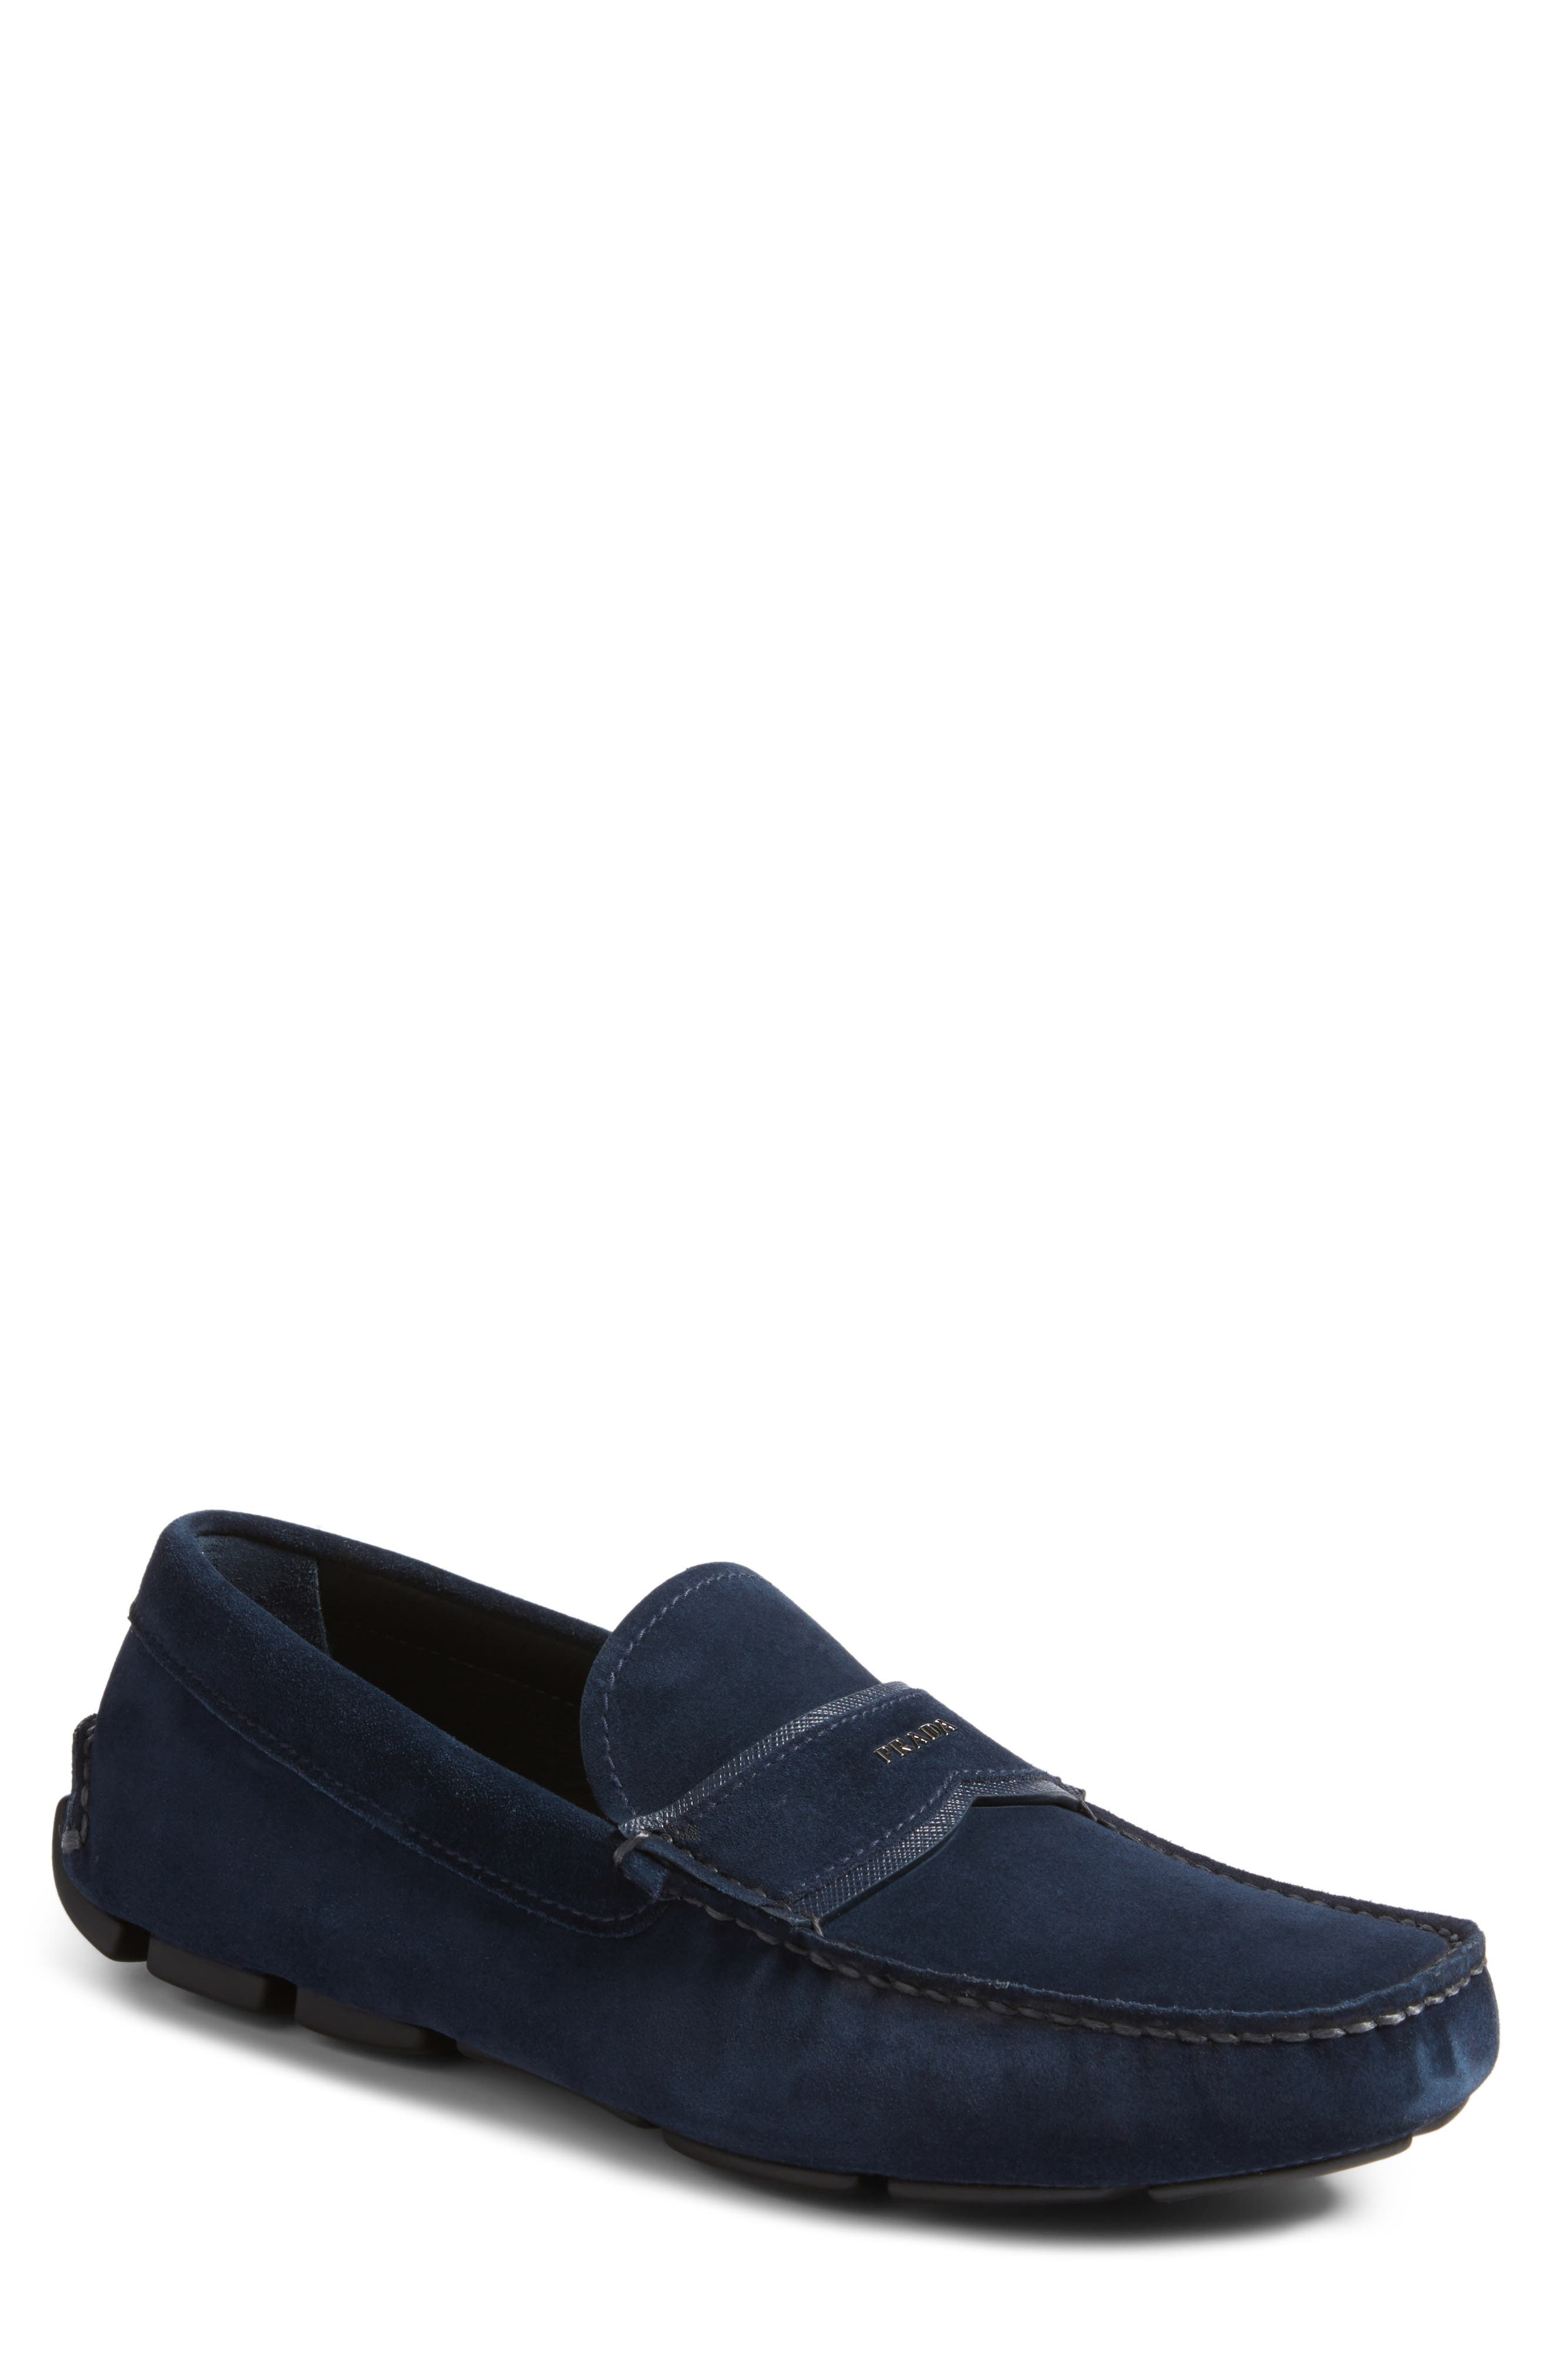 Driving Shoe,                         Main,                         color, OLTREMARE